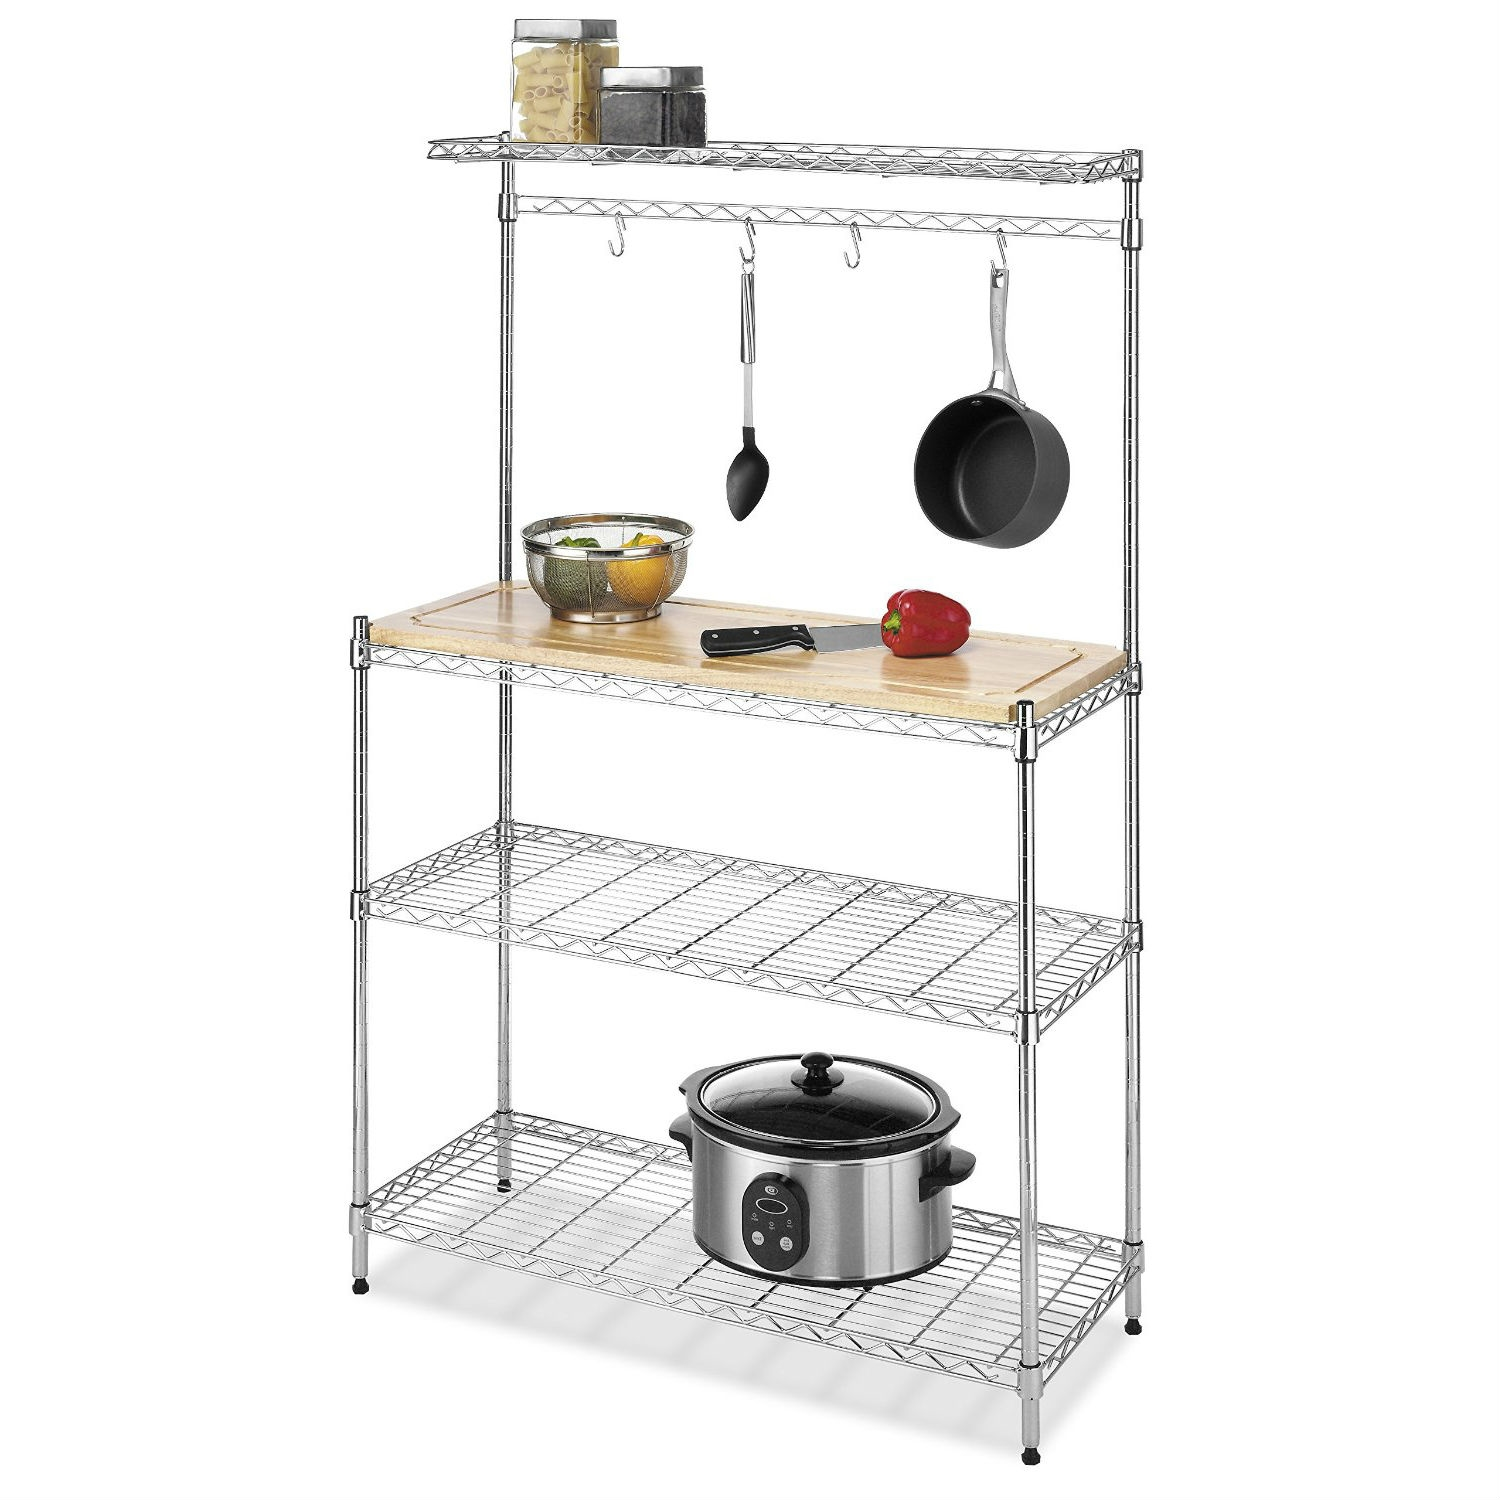 Modern Bakers Rack In Chrome Steel With Removable Wood Cutting Board Fastfurnishings